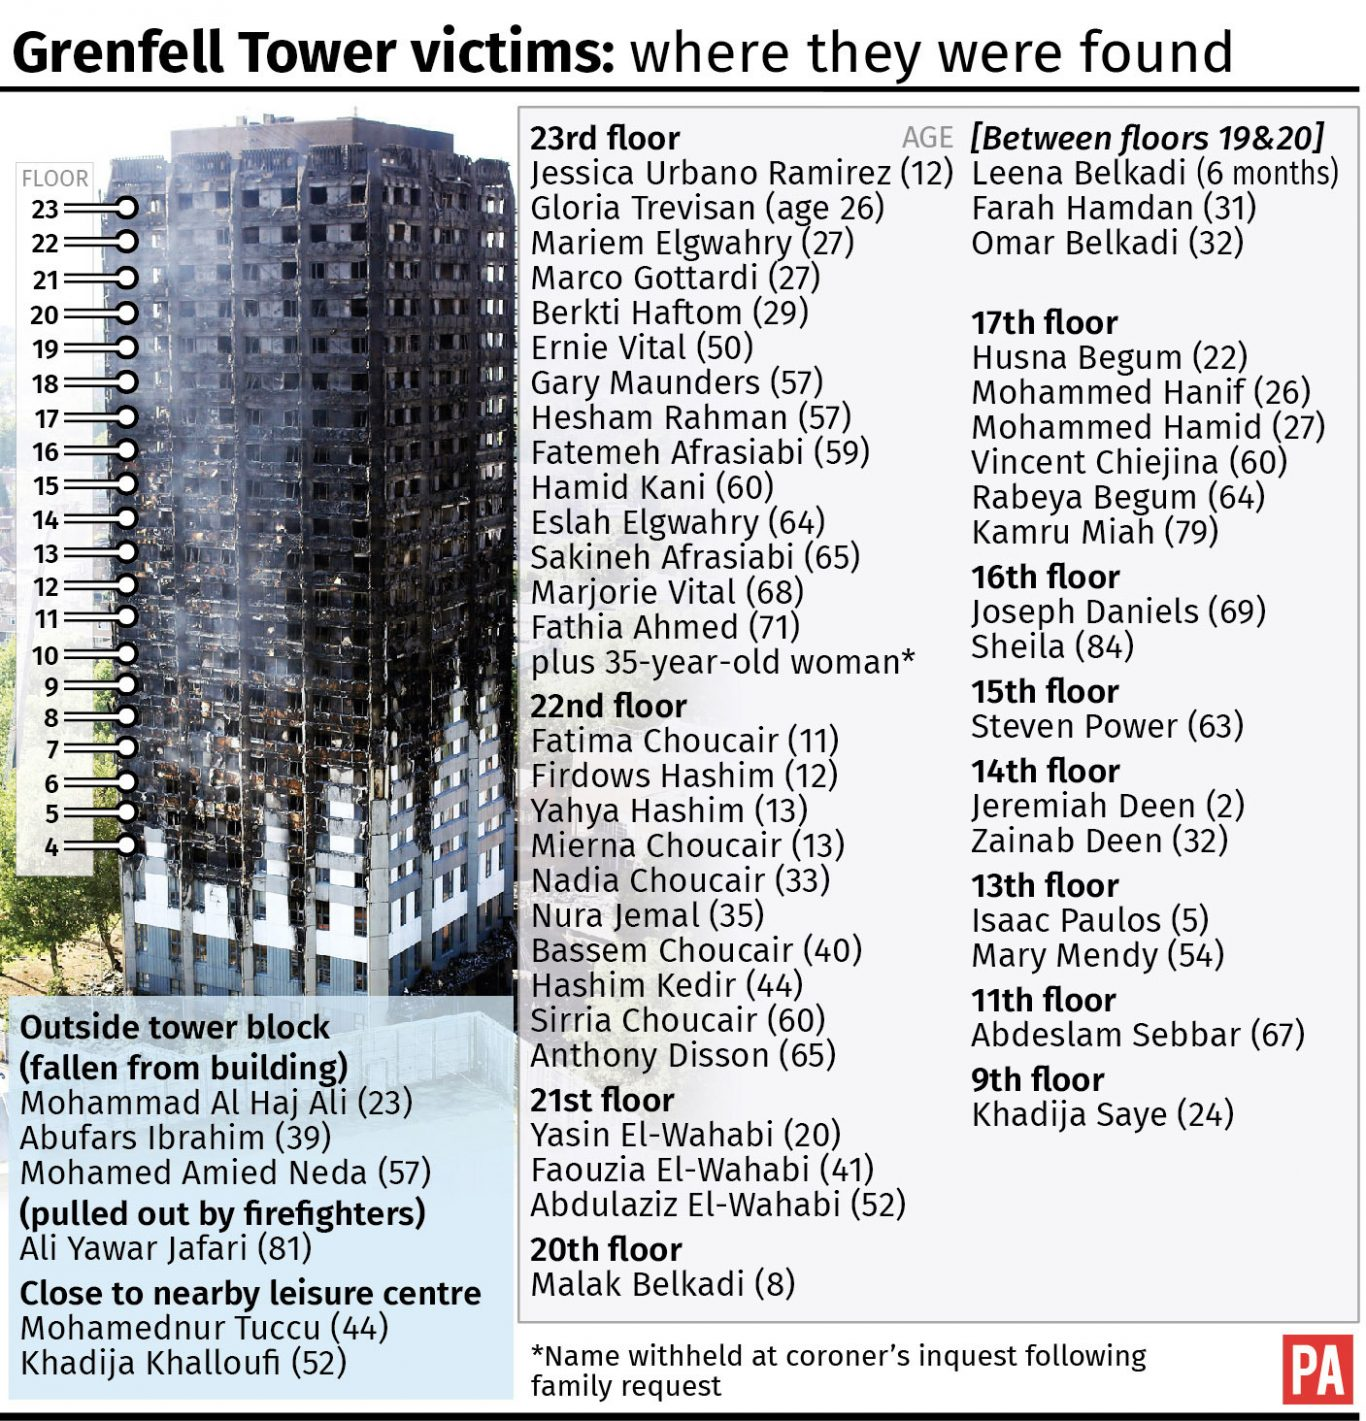 Where the Grenfell Tower victims were found